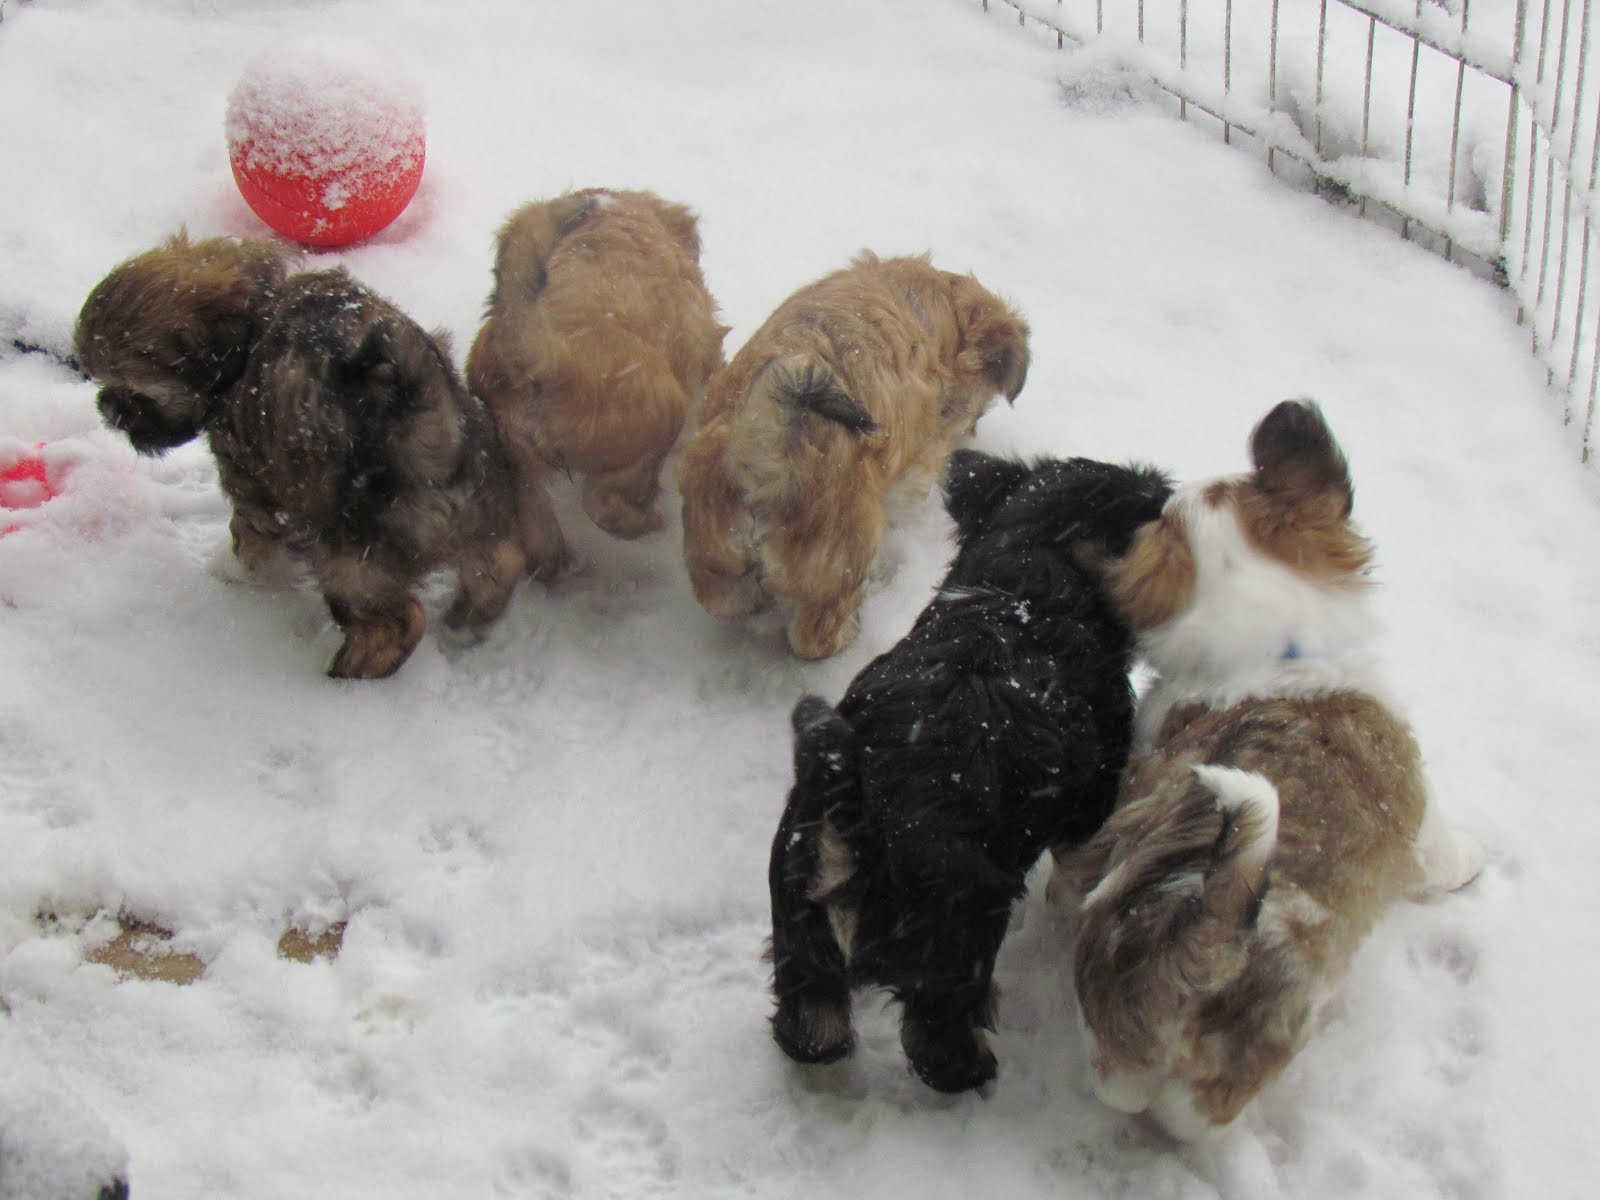 Gallery images and information: Puppies Playing In Snow